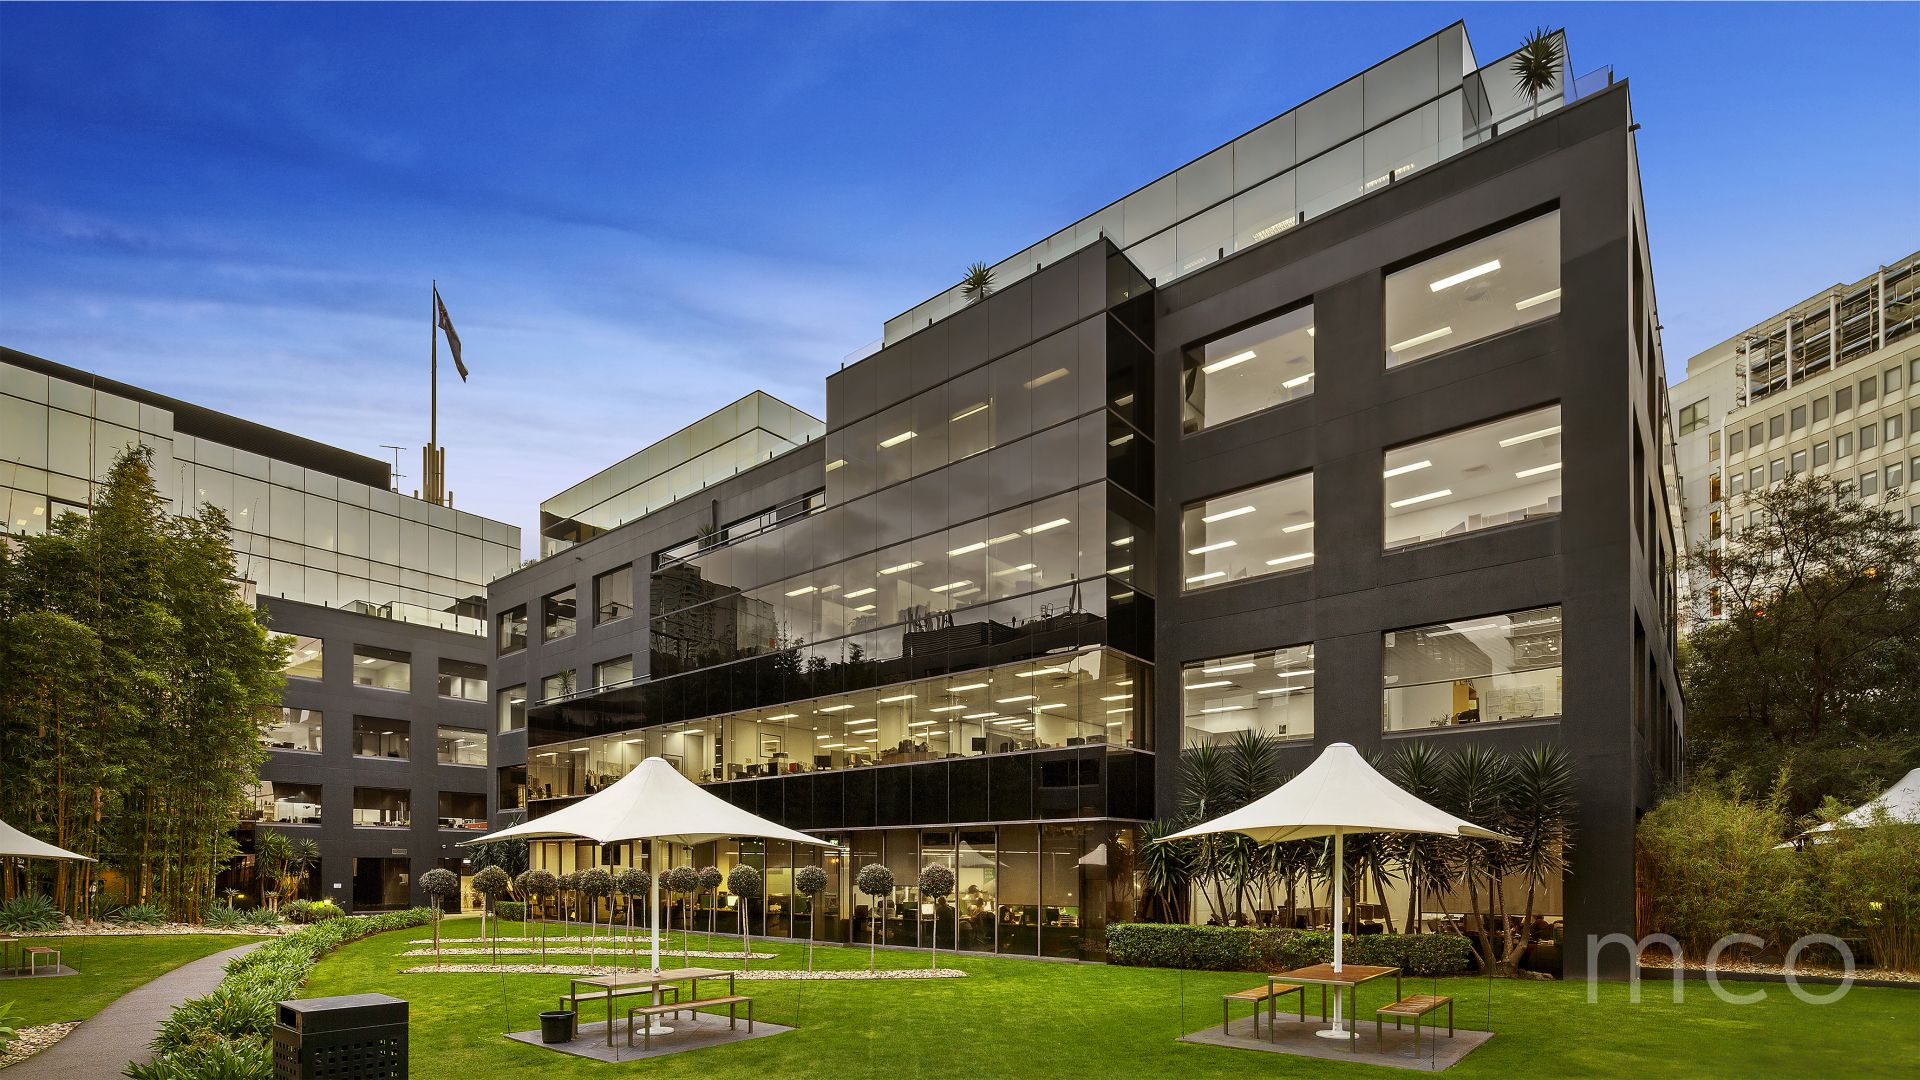 Flexible leasing opportunity within low rise buildings on outskirts of Melbourne CBD